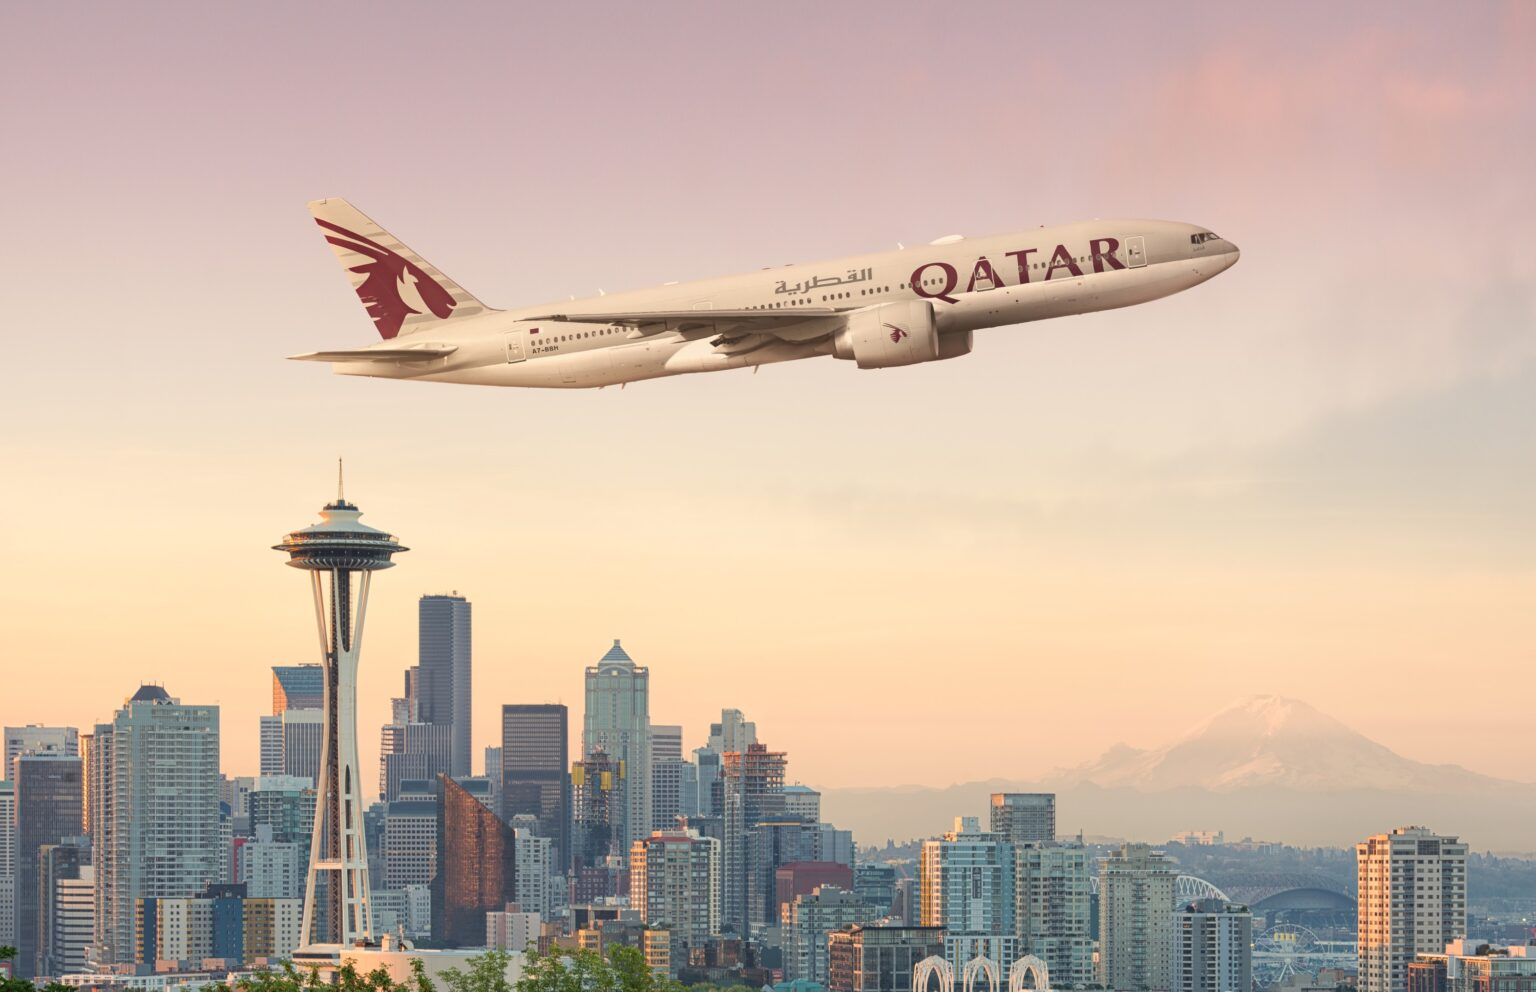 Four weekly flights launch nearly two months ahead of schedule, connecting Seattle with our global network of over 120 destinations via the Best Airport in the Middle East.